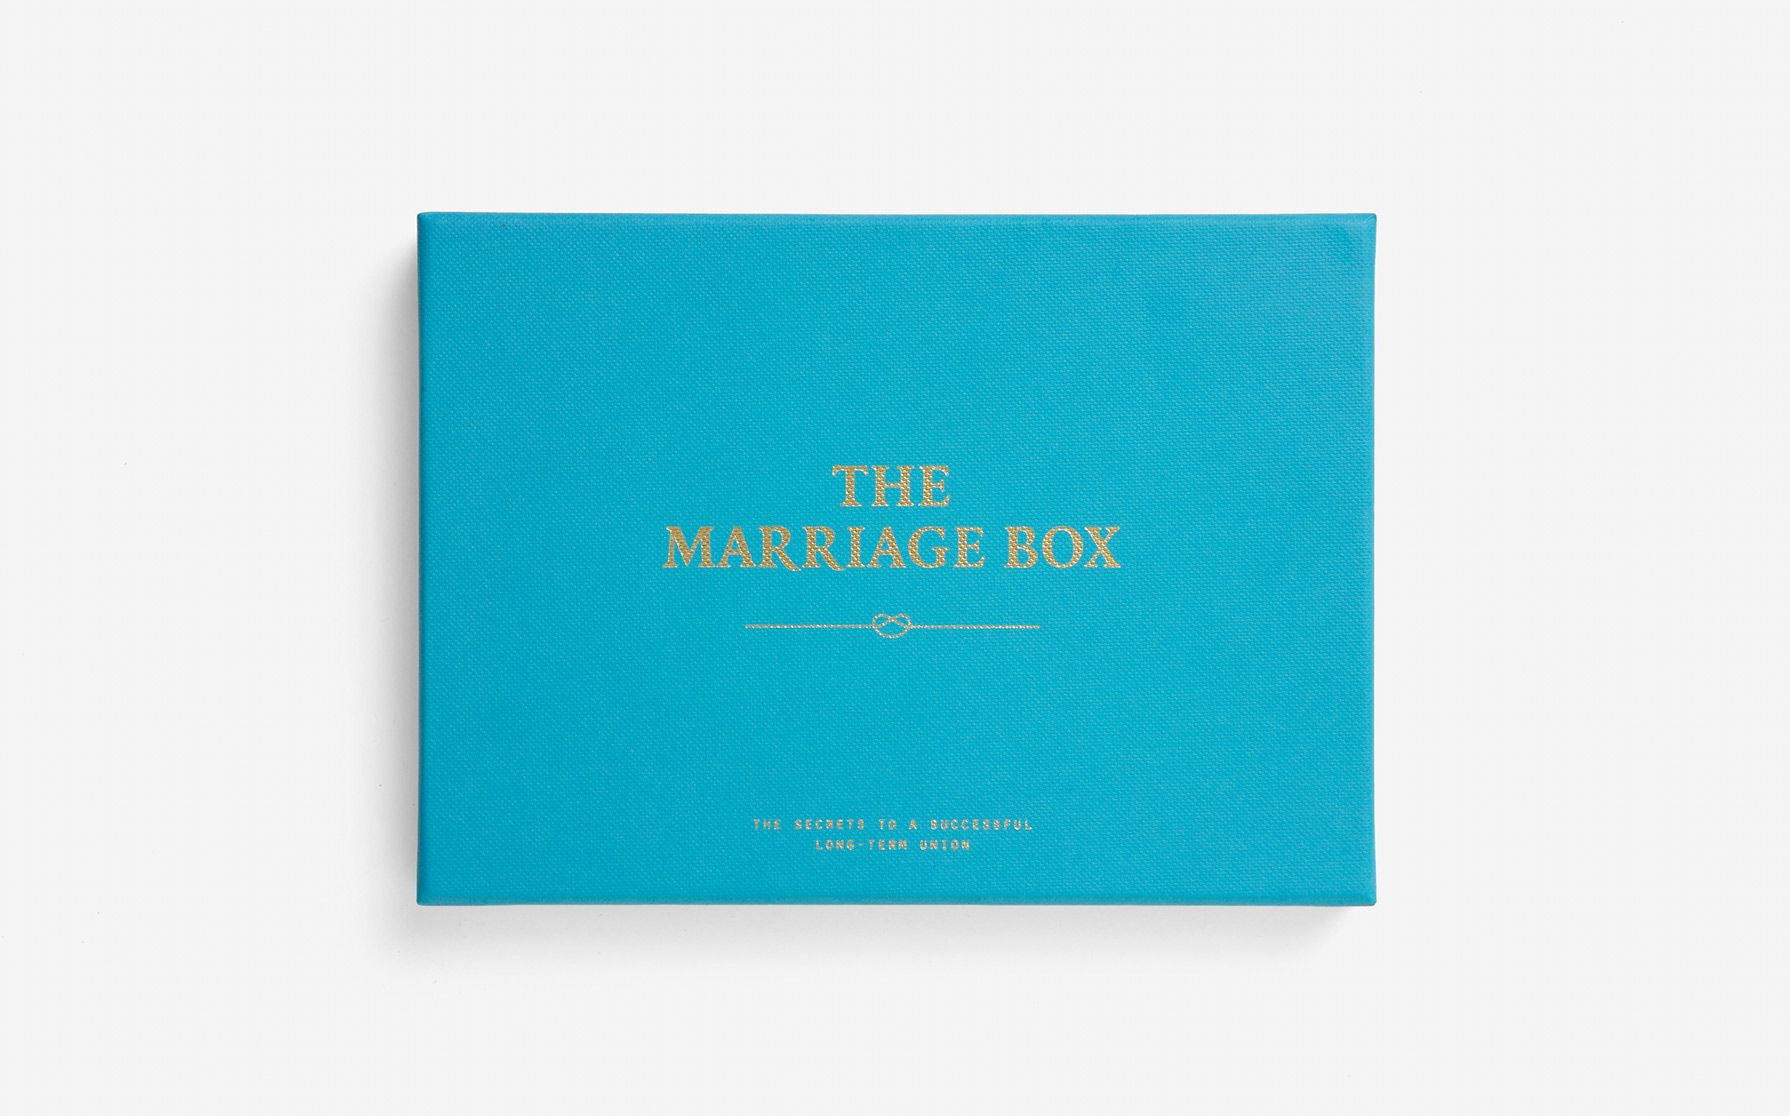 The school of Life - The Marriage Box